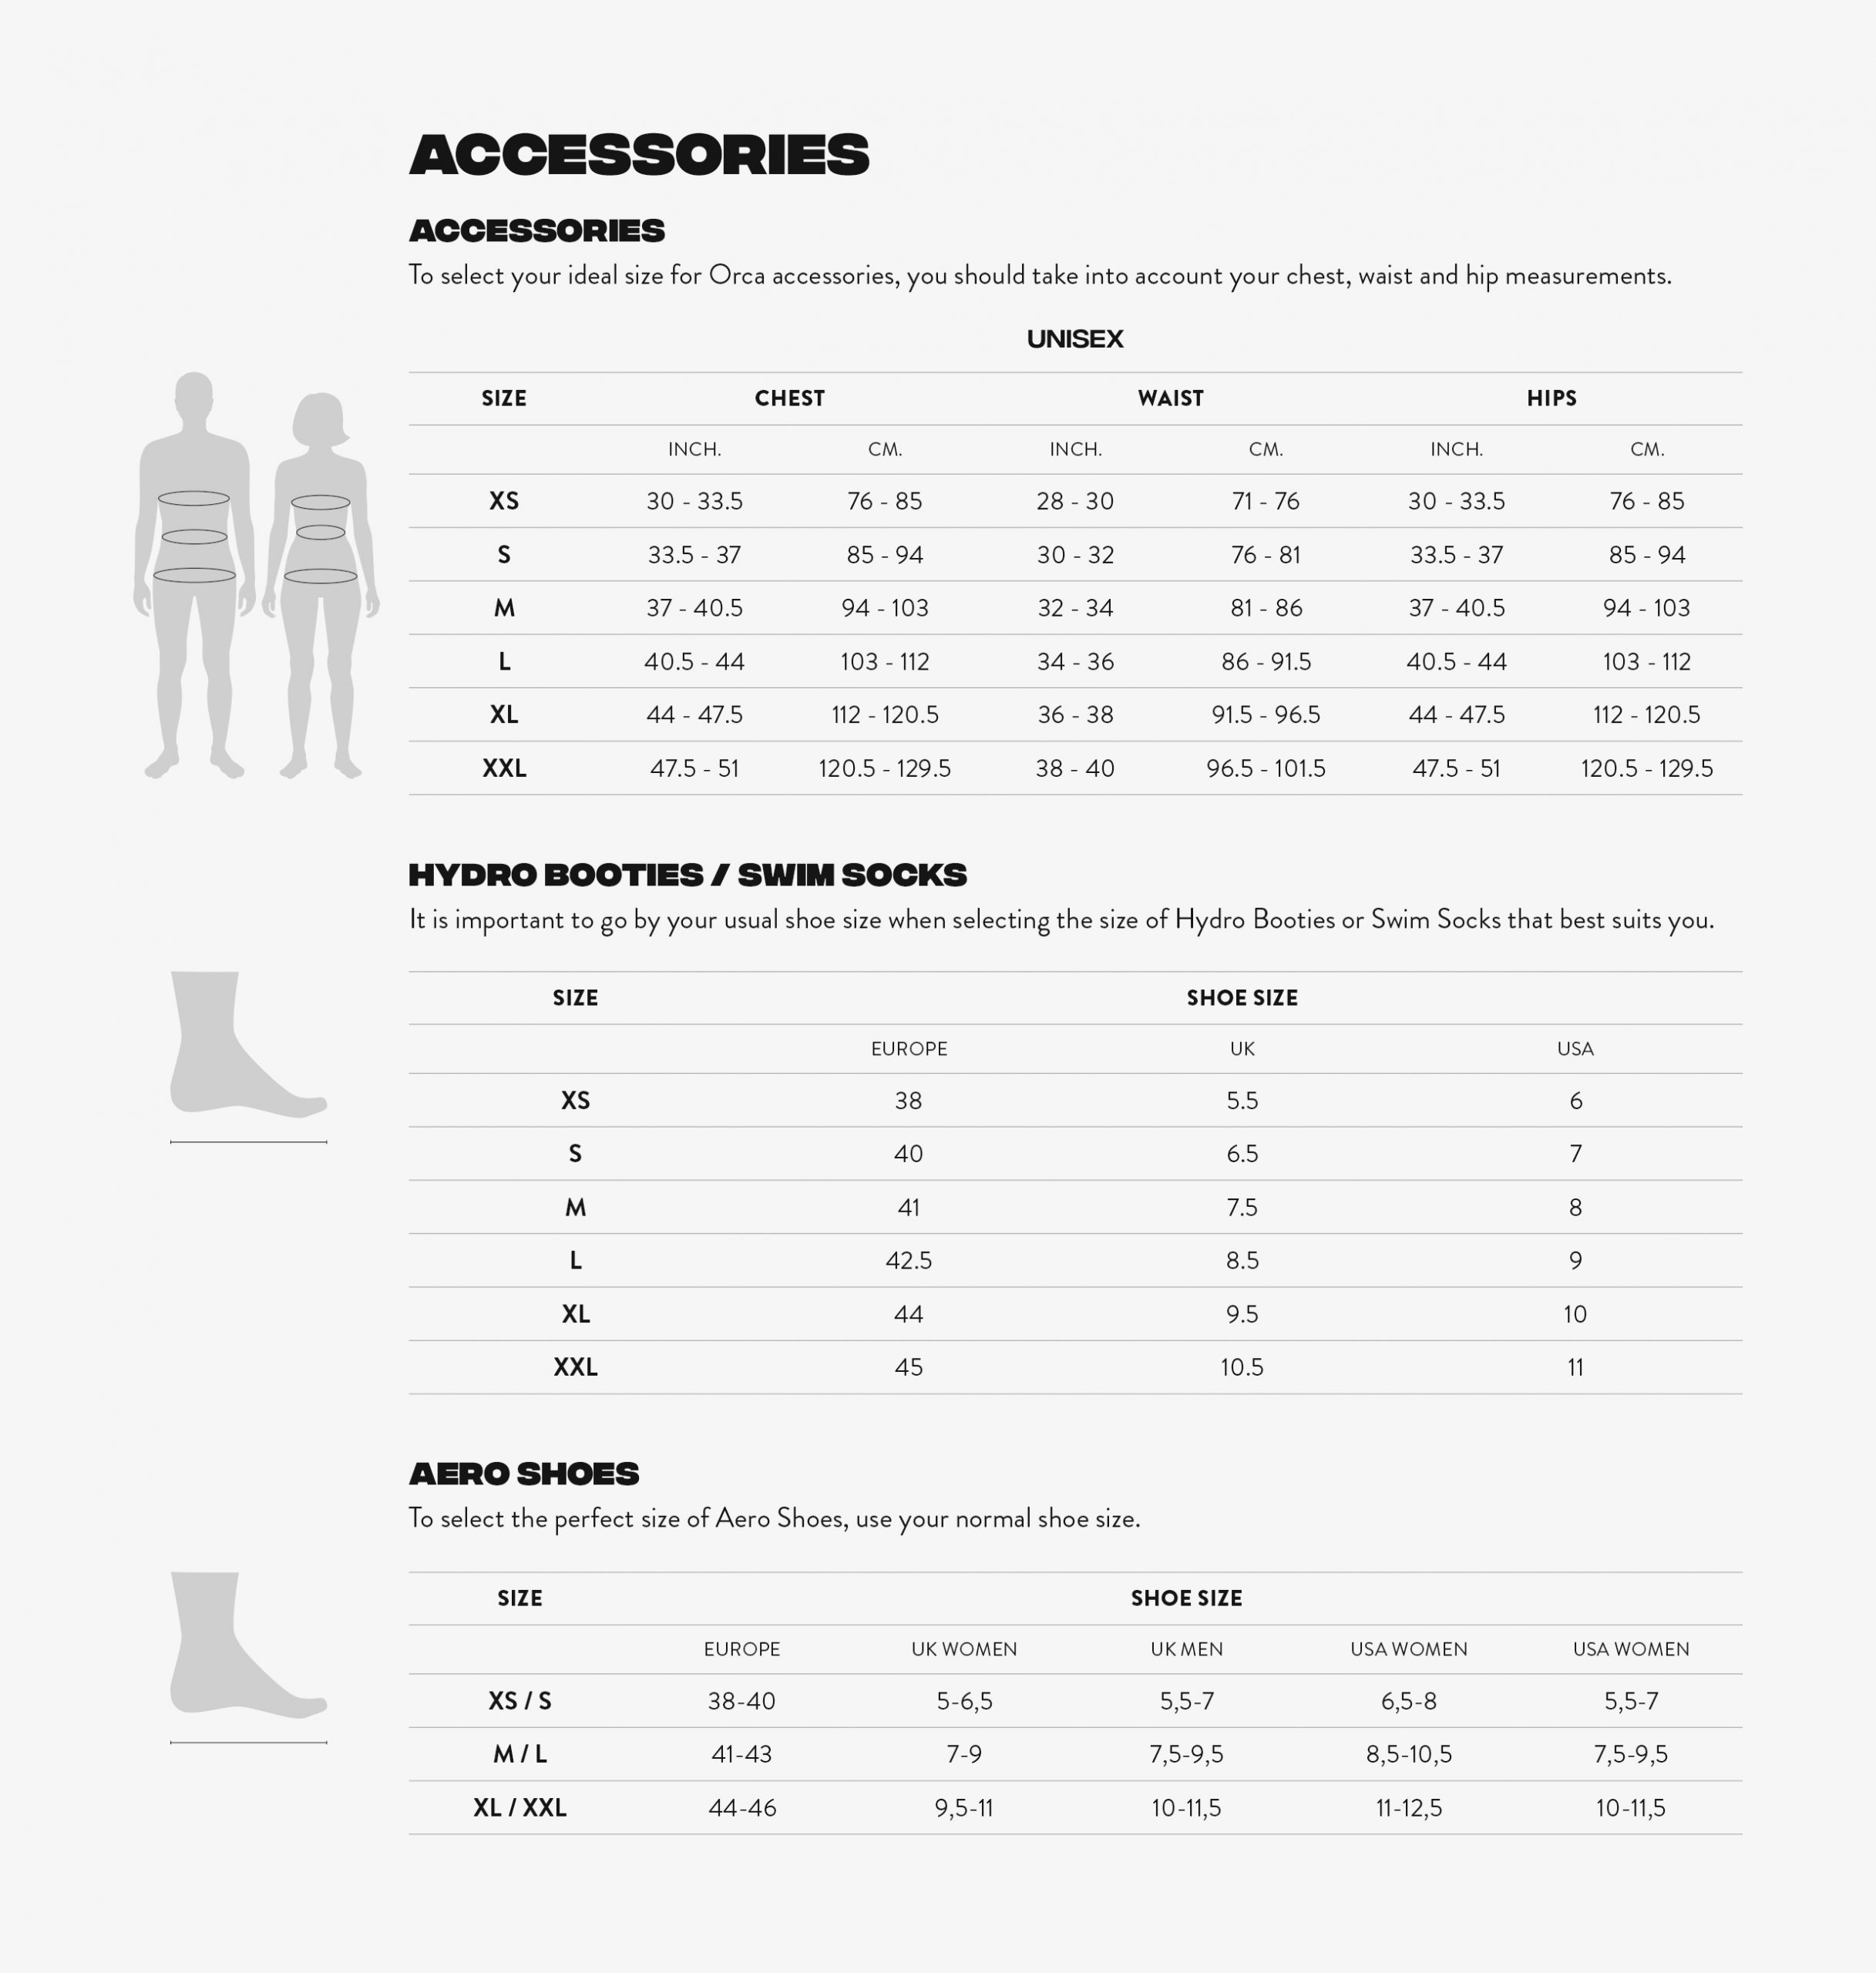 Size chart - Accessories